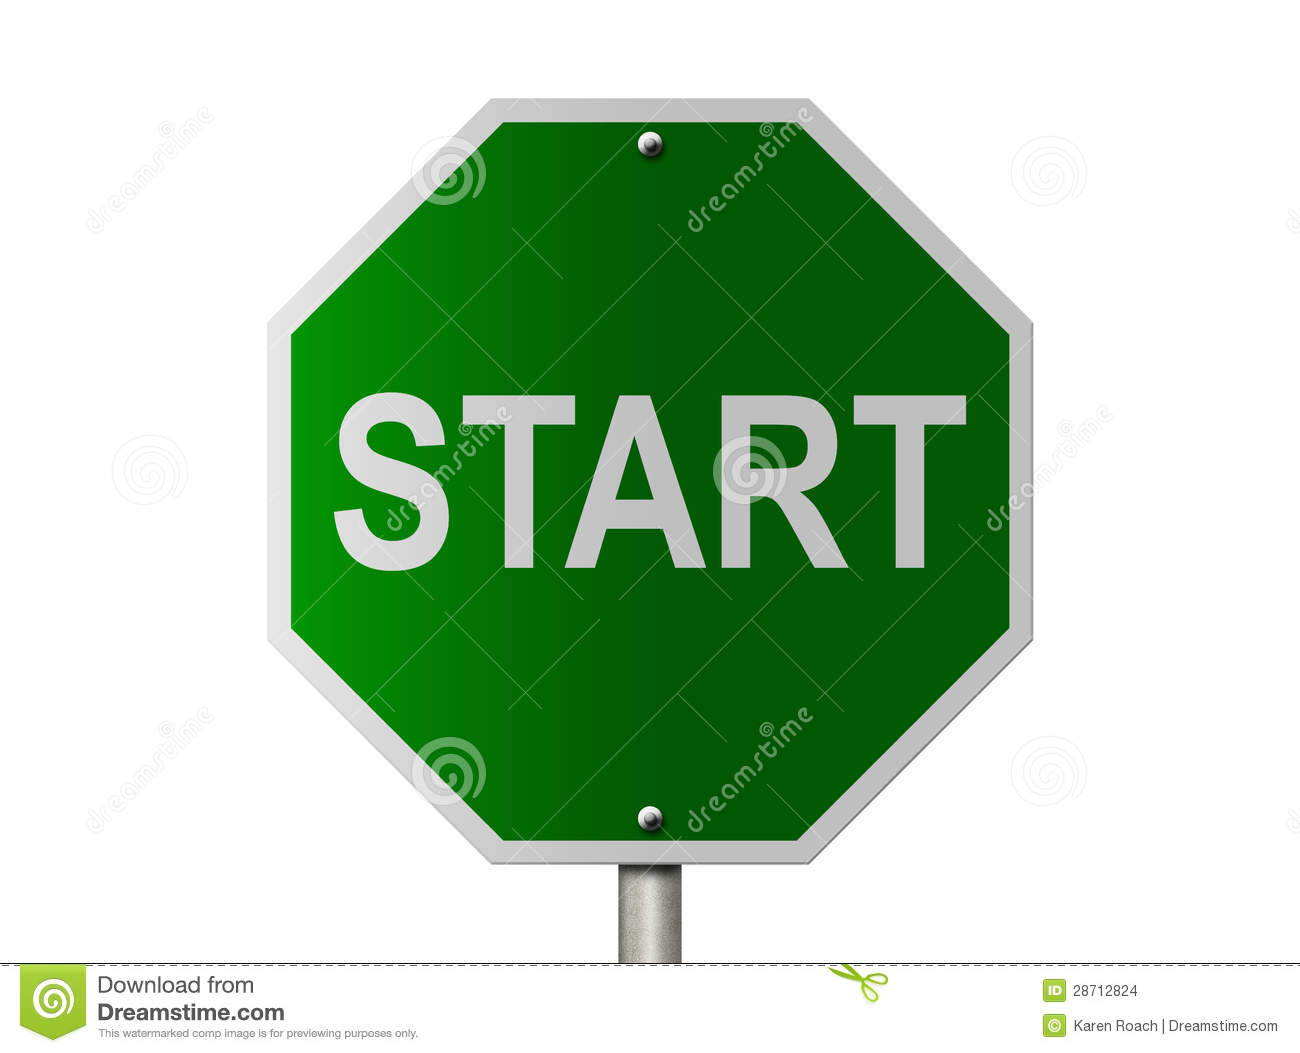 start sign stock images image 28712824 clipart database download clipart database download